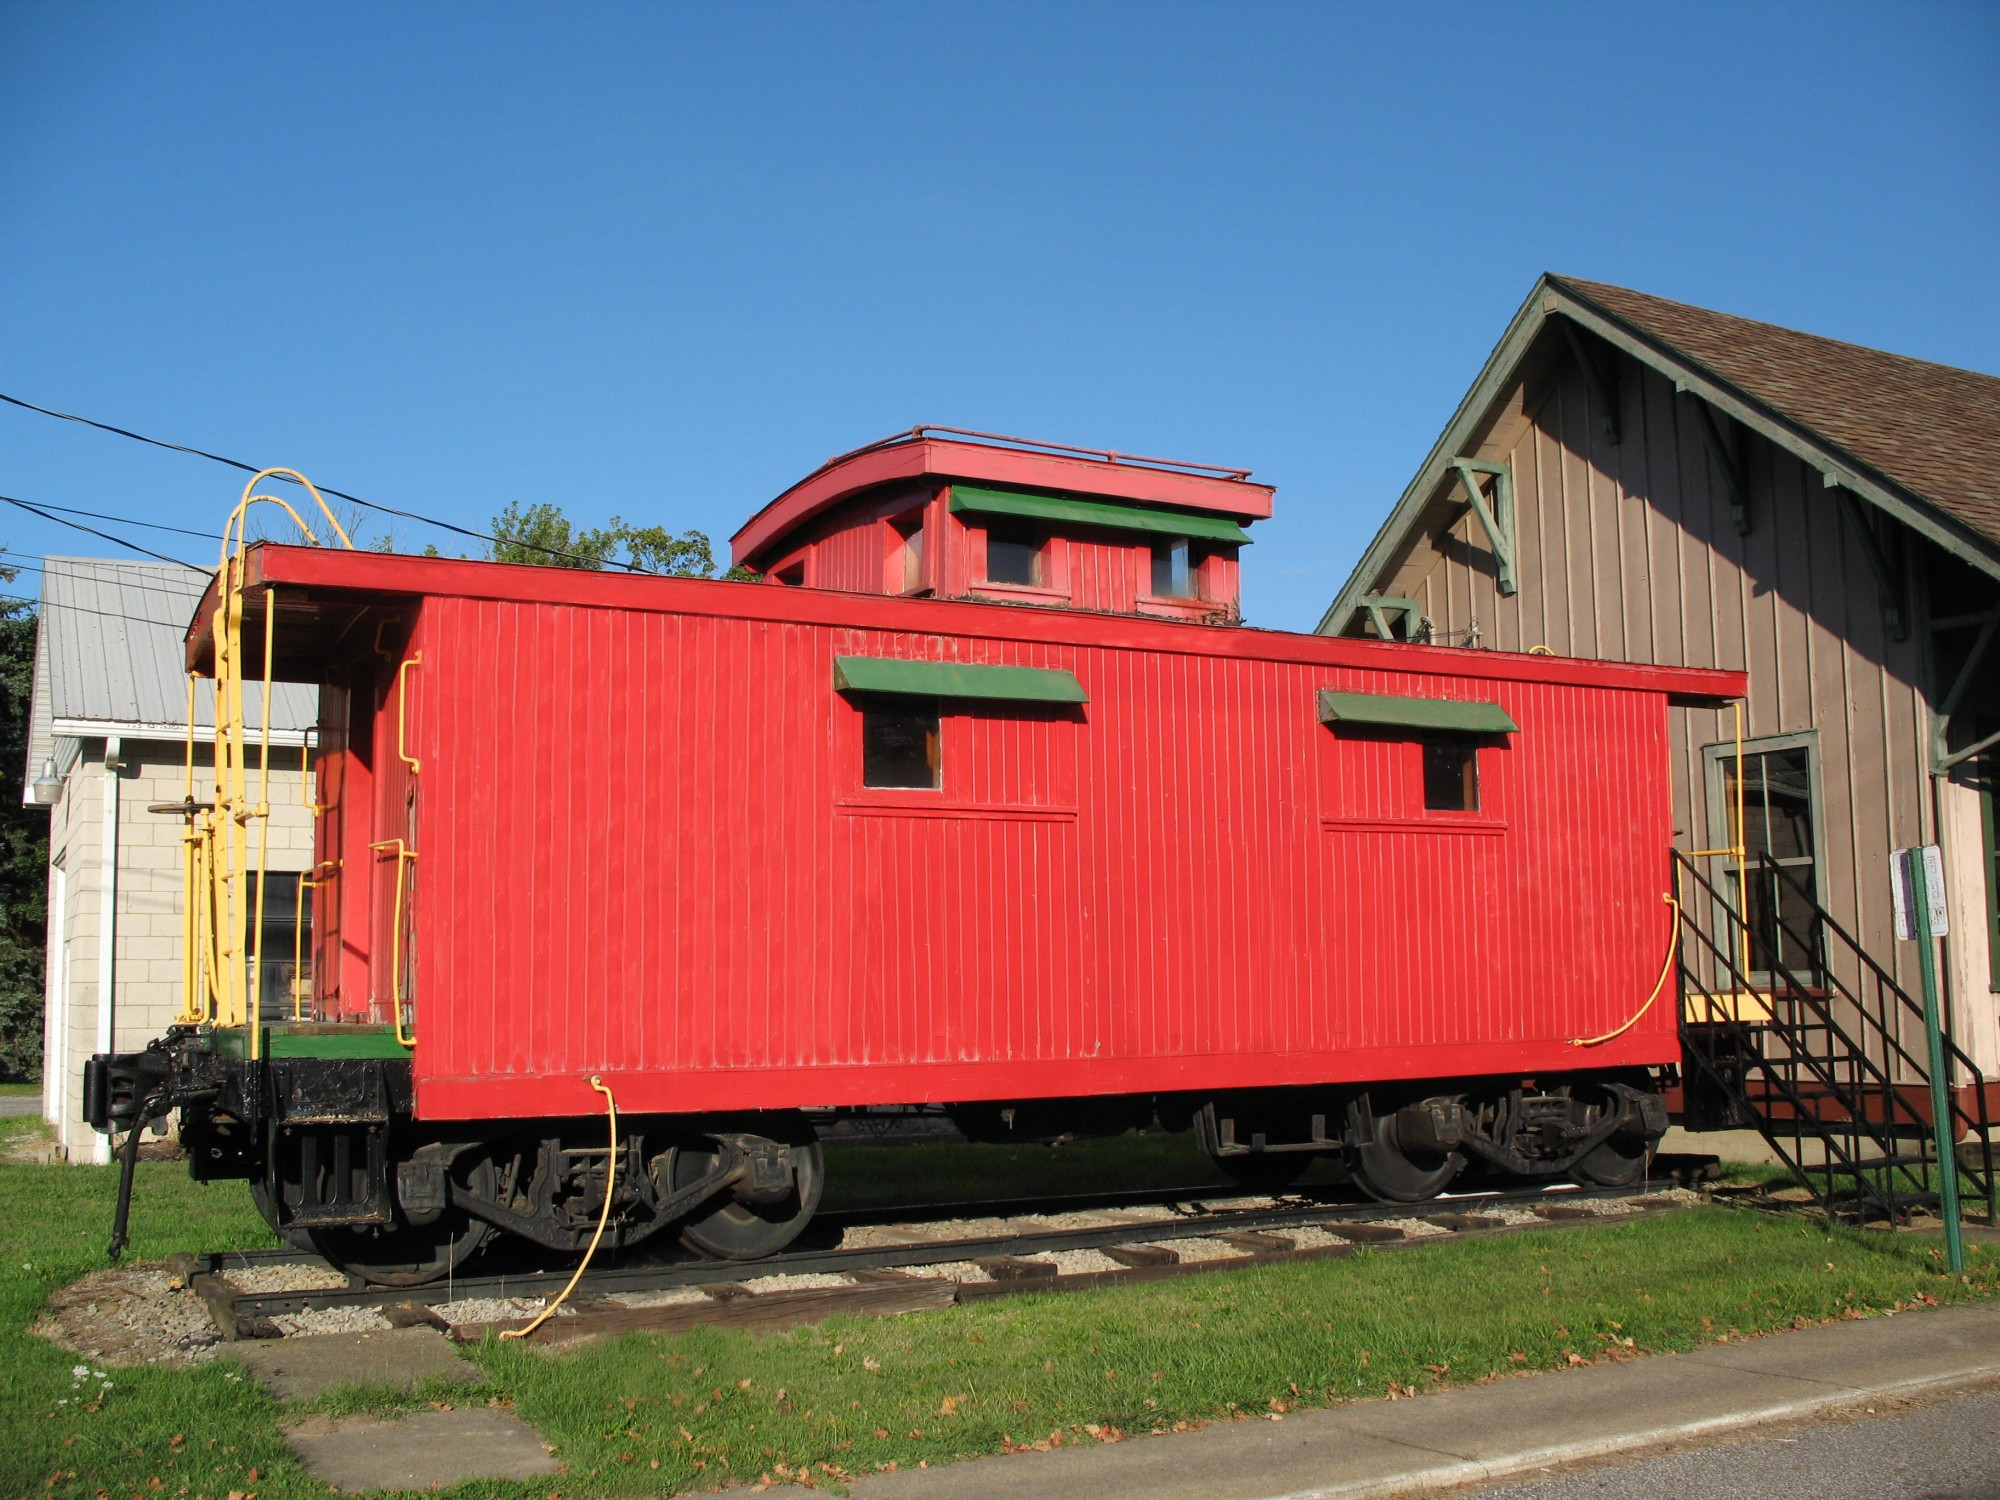 first office, smithville caboose, Wayne County Community Foundation